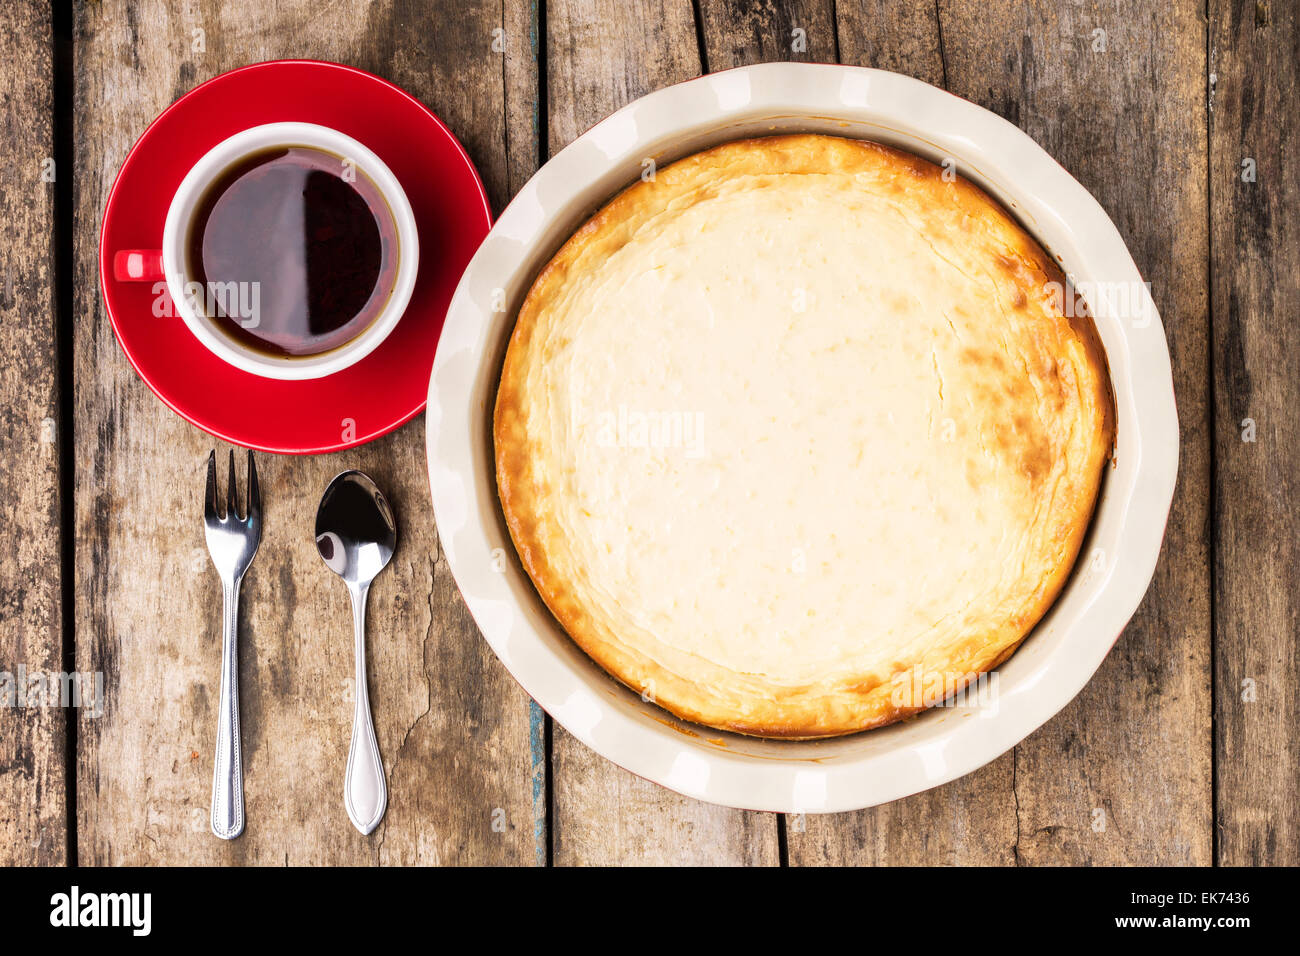 Fresh baked cheesecake with cup of black tea on wooden table. Top view image of breakfast eating background Stock Photo